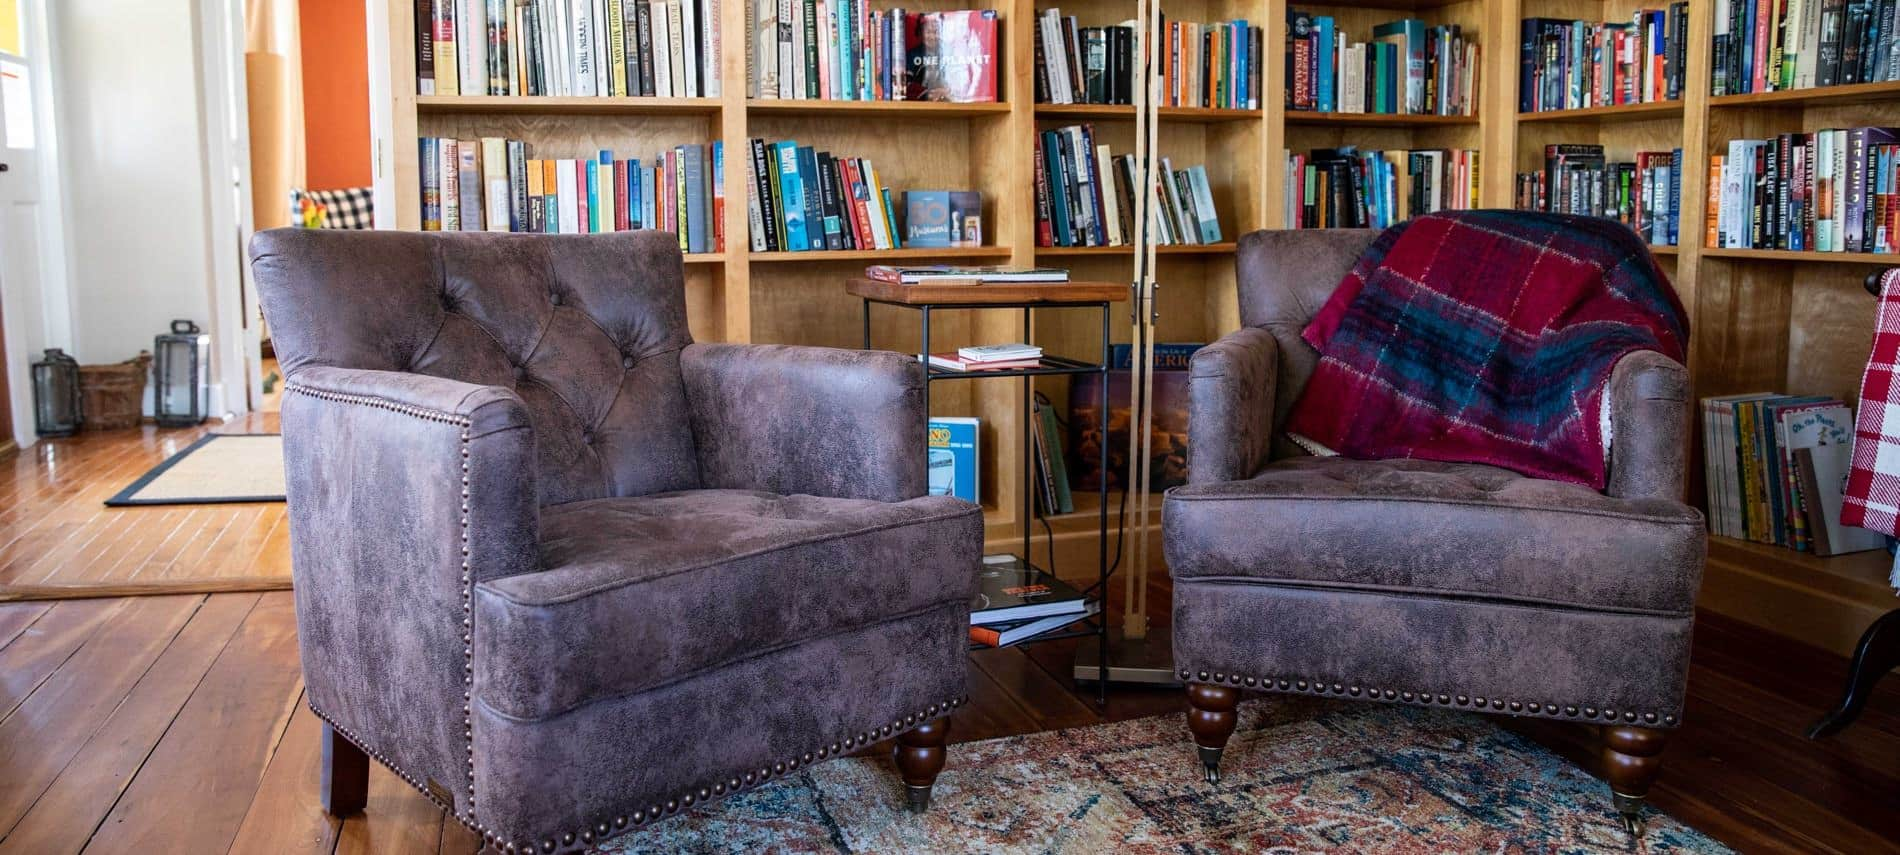 Cozy reading nook with two leather chairs in front of two walls of book-lined shelves